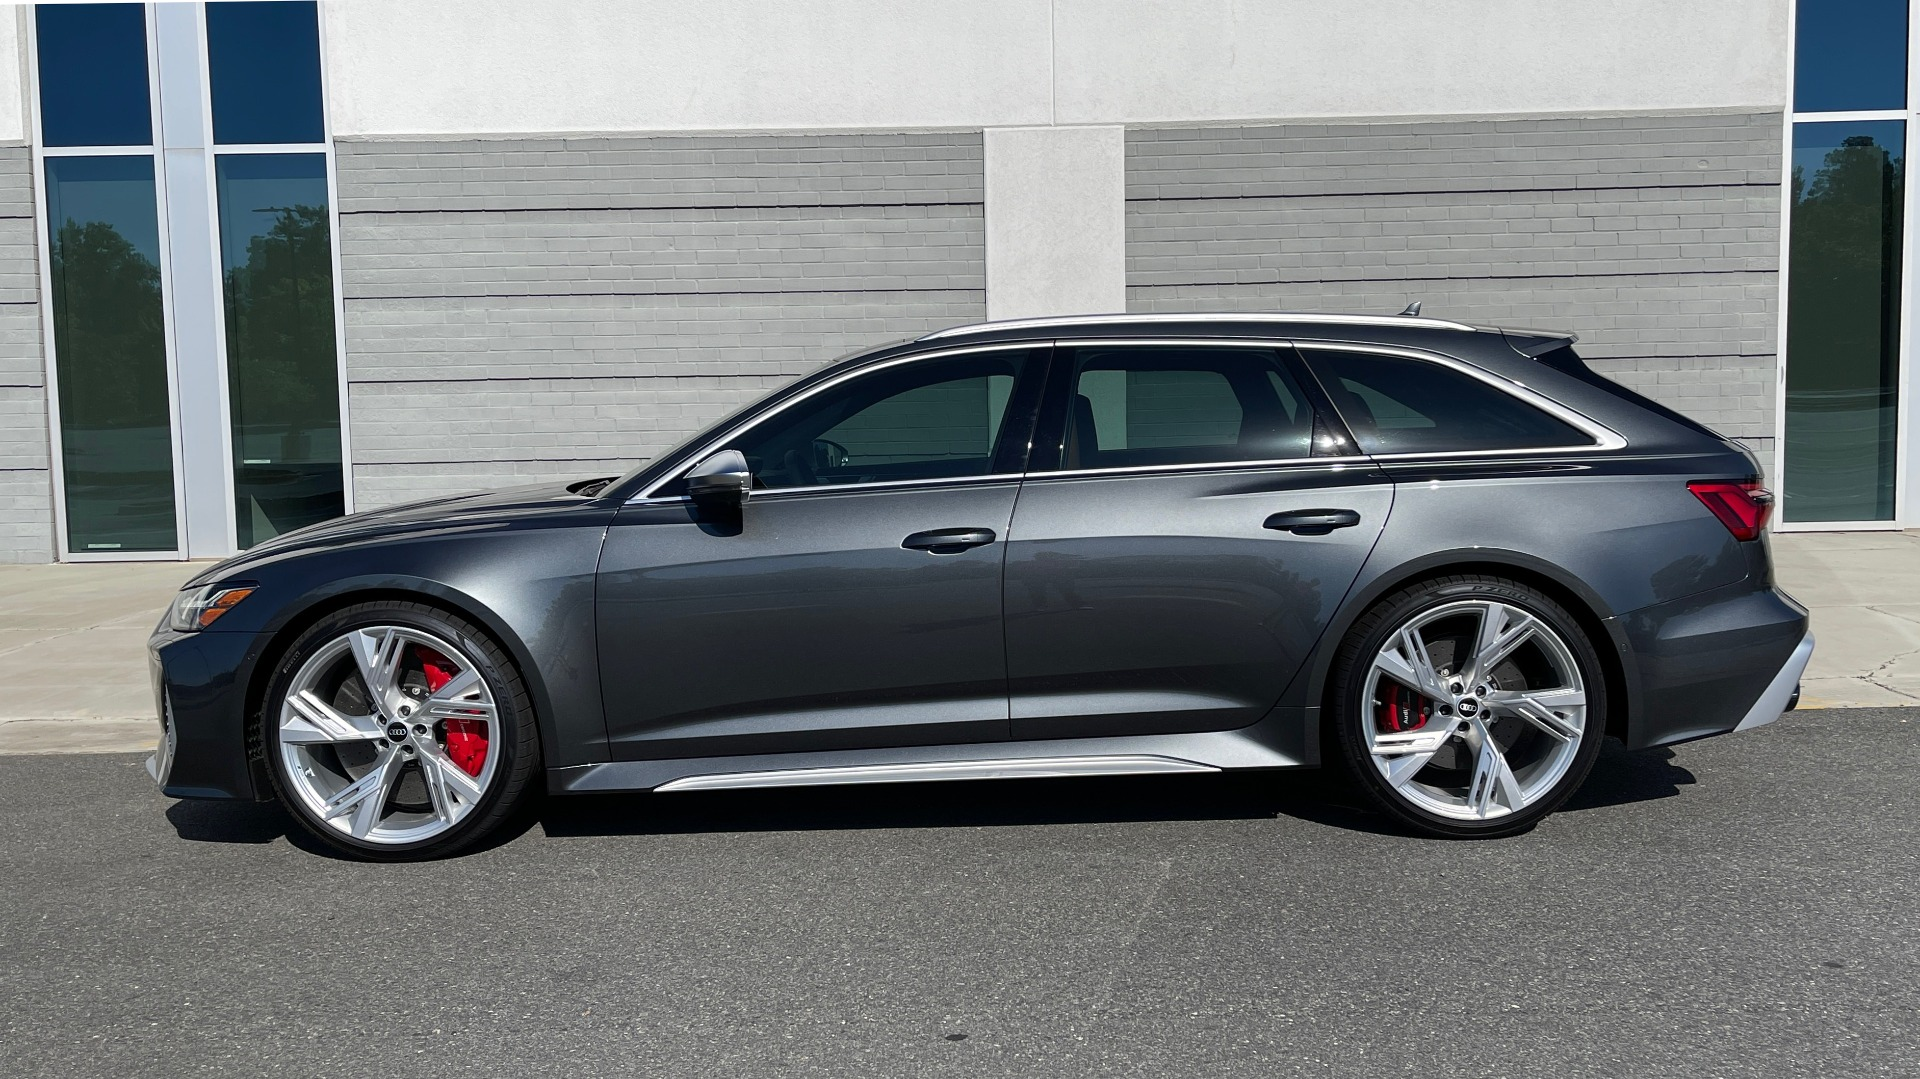 Used 2021 Audi RS 6 AVANT WAGON / EXEC PKG / CARBON OPTIC / B&O SND / DRVR ASST / SPRT EXH for sale Sold at Formula Imports in Charlotte NC 28227 4